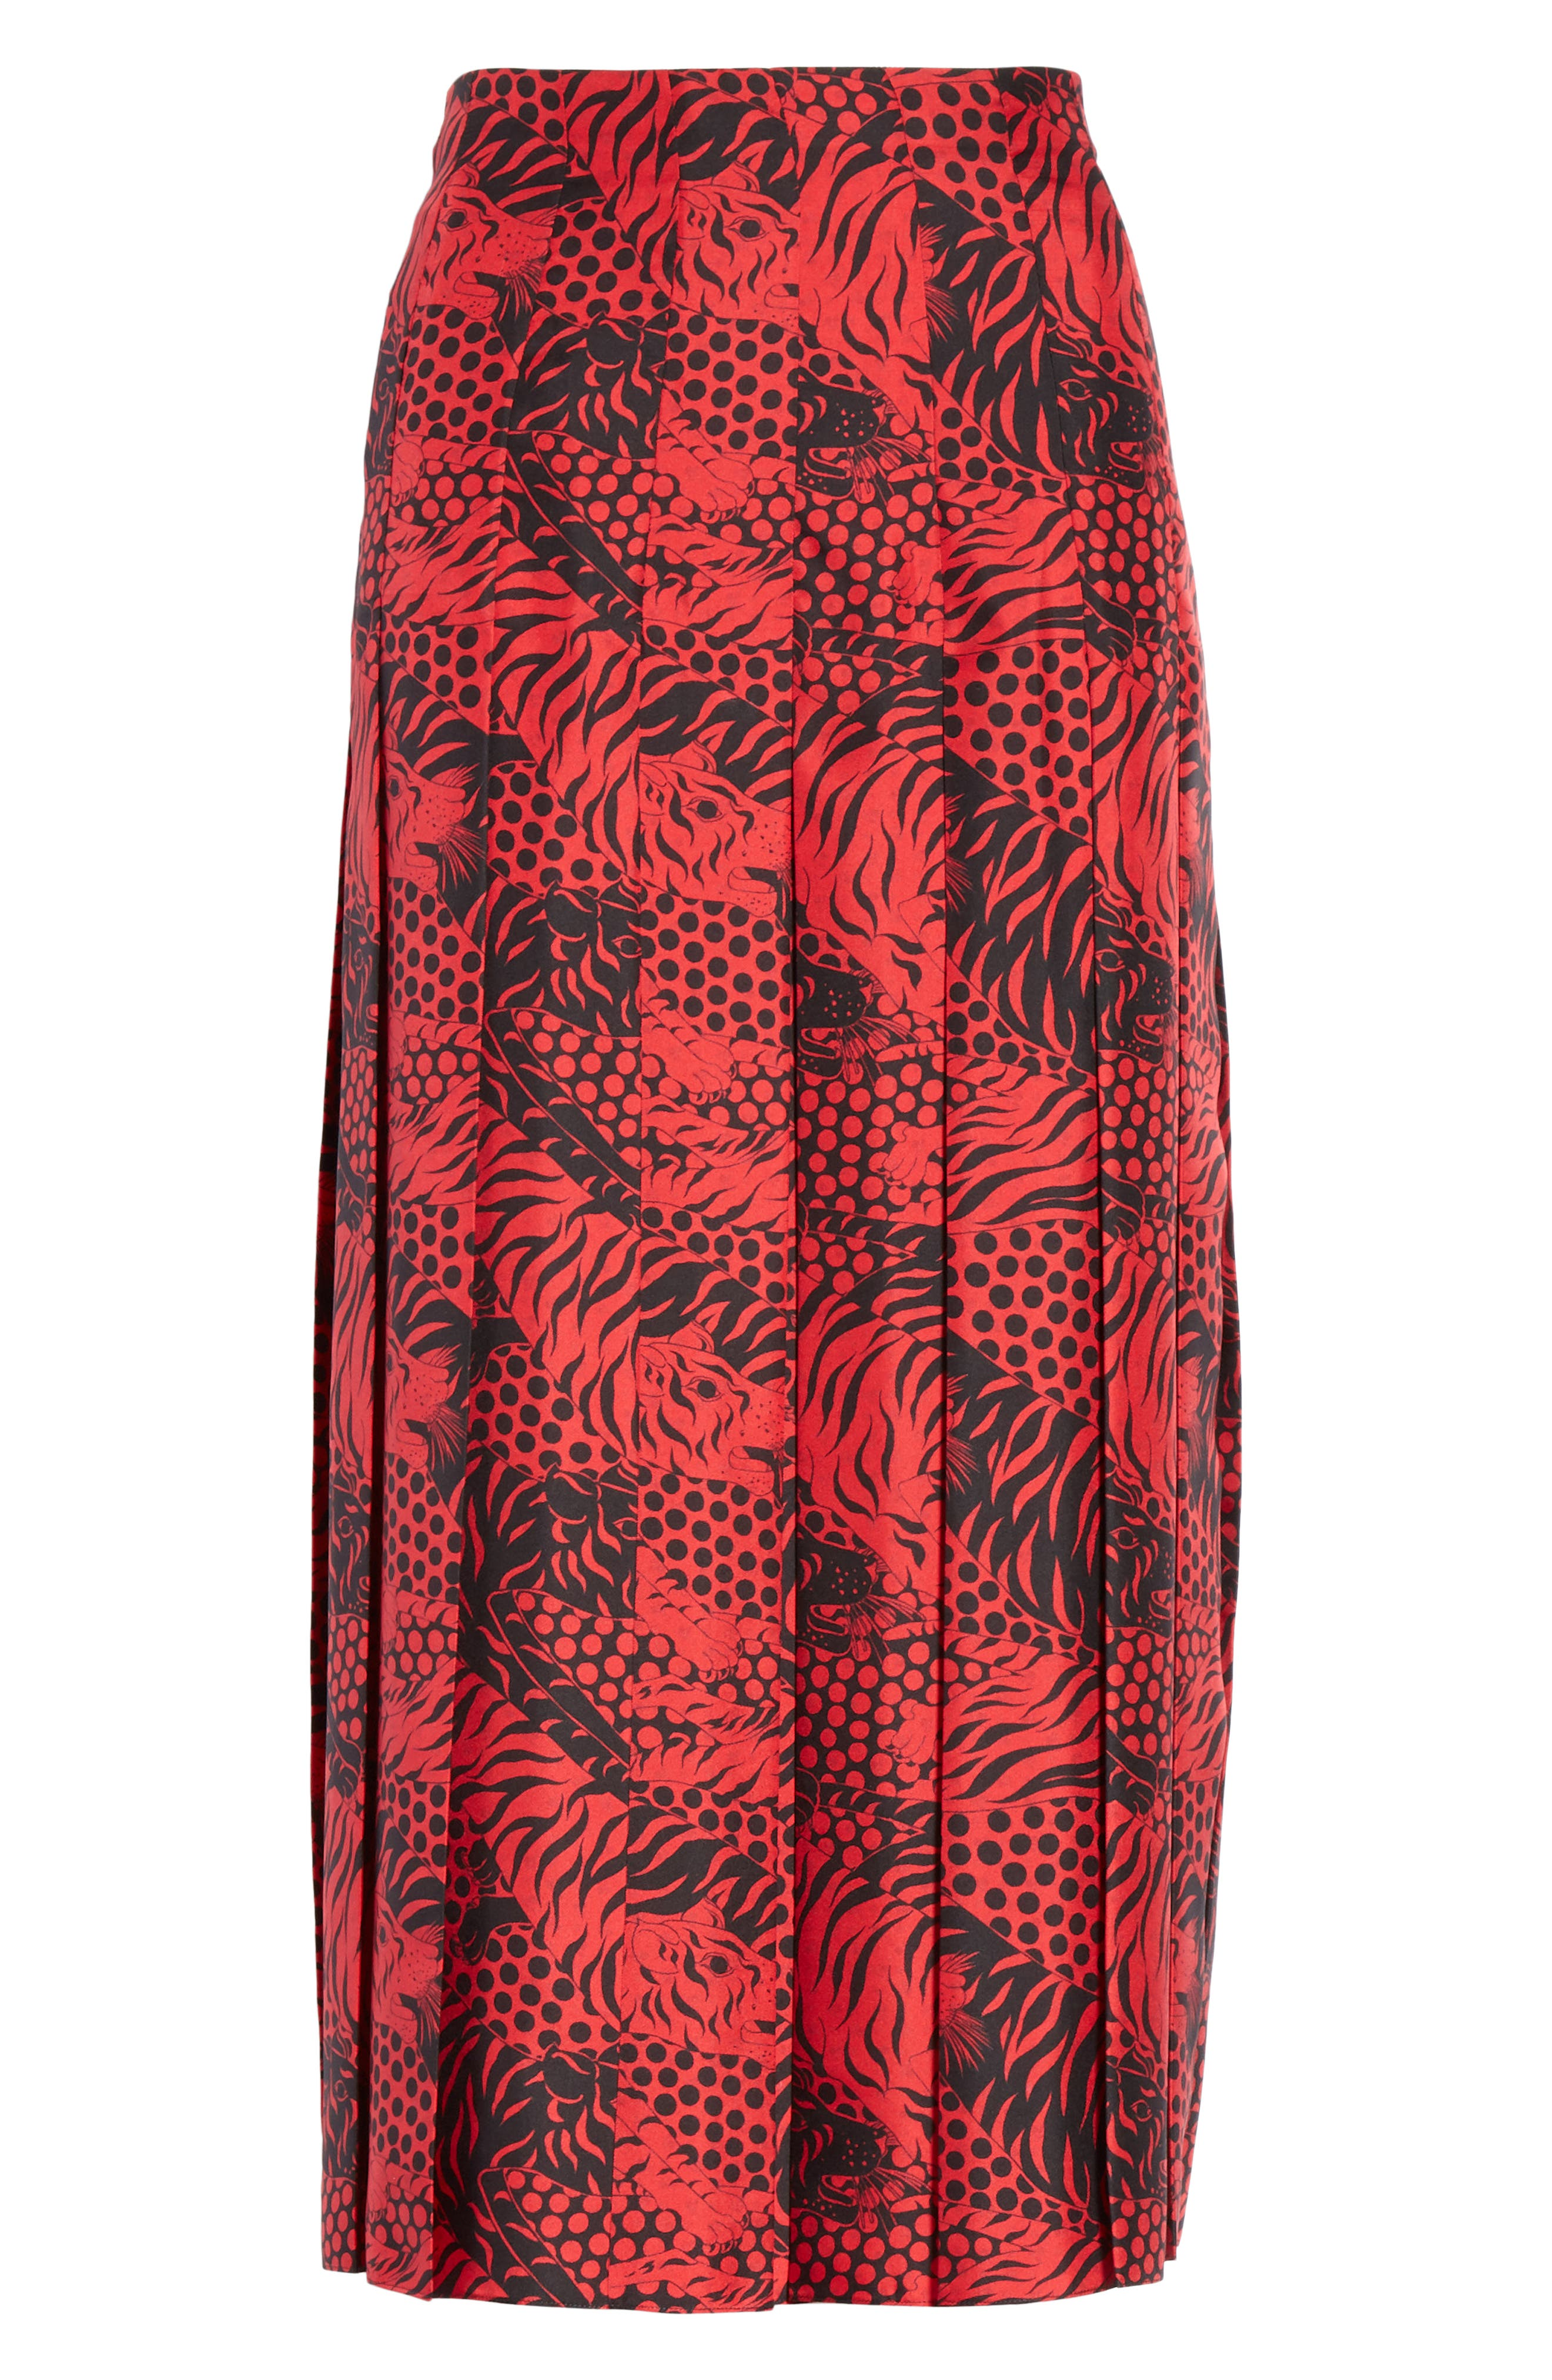 Tiger Print Pleated Silk Skirt,                             Alternate thumbnail 3, color,                             RED